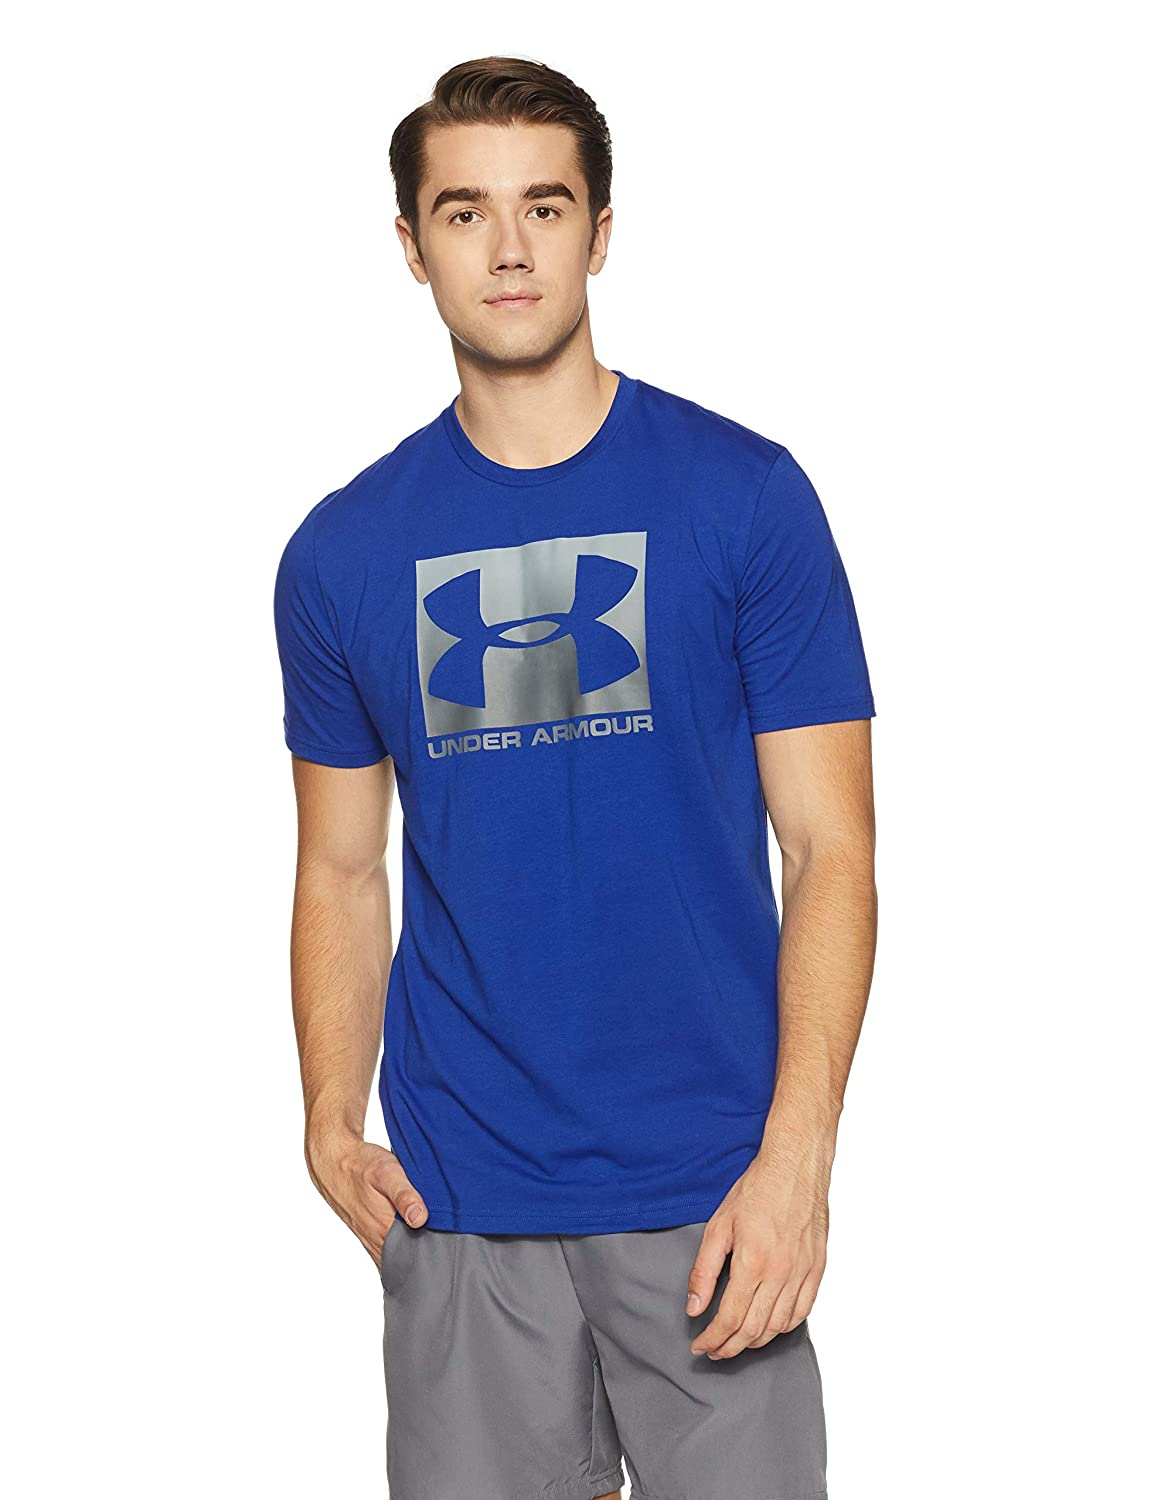 Under Armour Boxed Sportstyle Mens Short Sleeve Shirt Men39s Digital Circuit Board Tshirt 2xlarge Light Blue Clothing Sports Outdoors